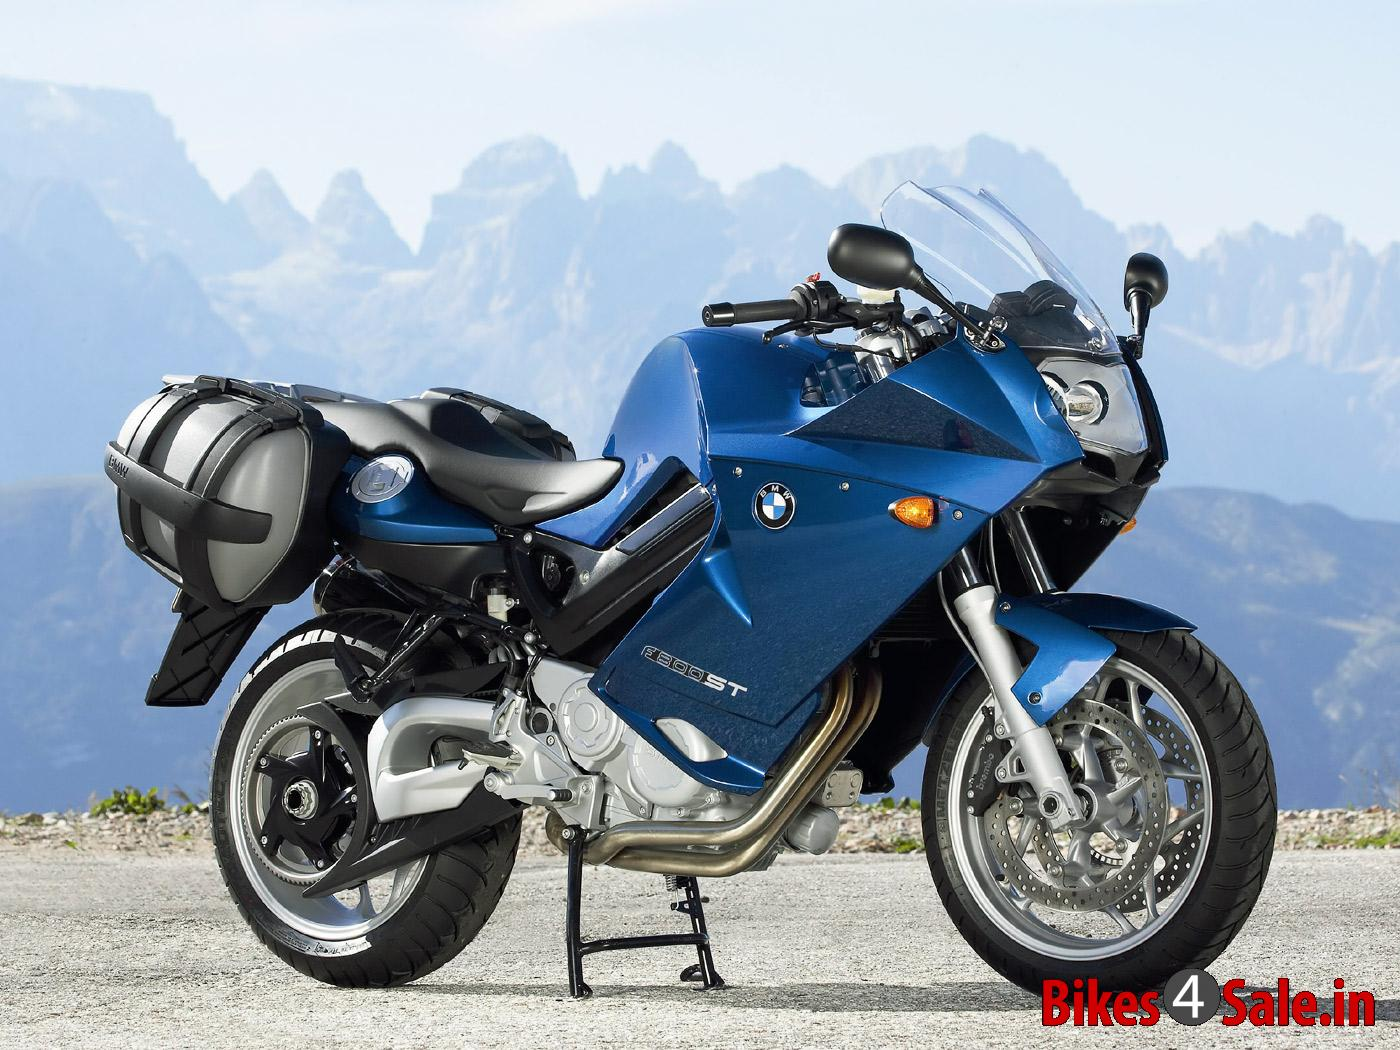 Bmw Gt Motorcycle Price